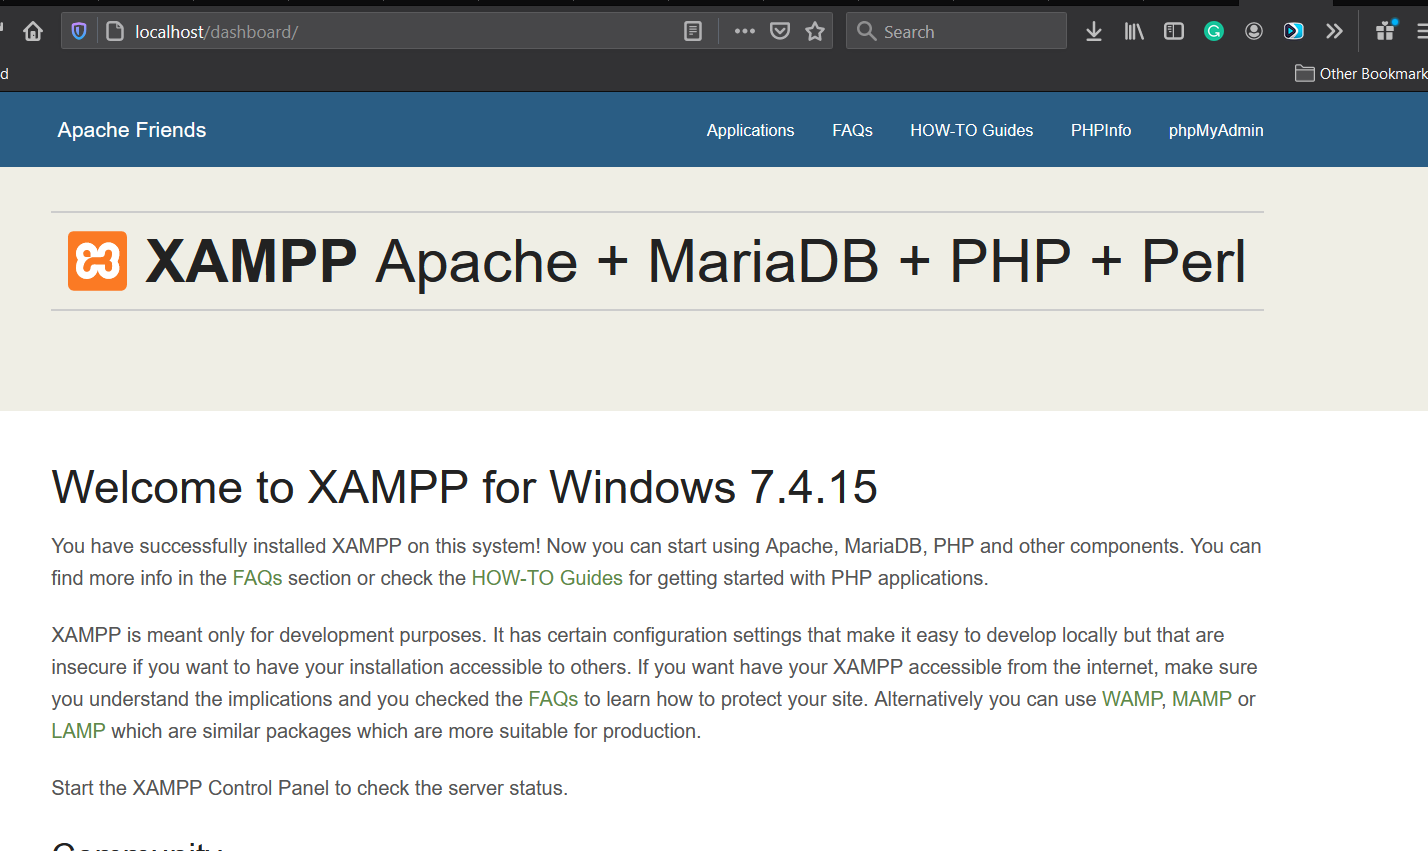 Install XAMPP on Windows 10 - Dashboard